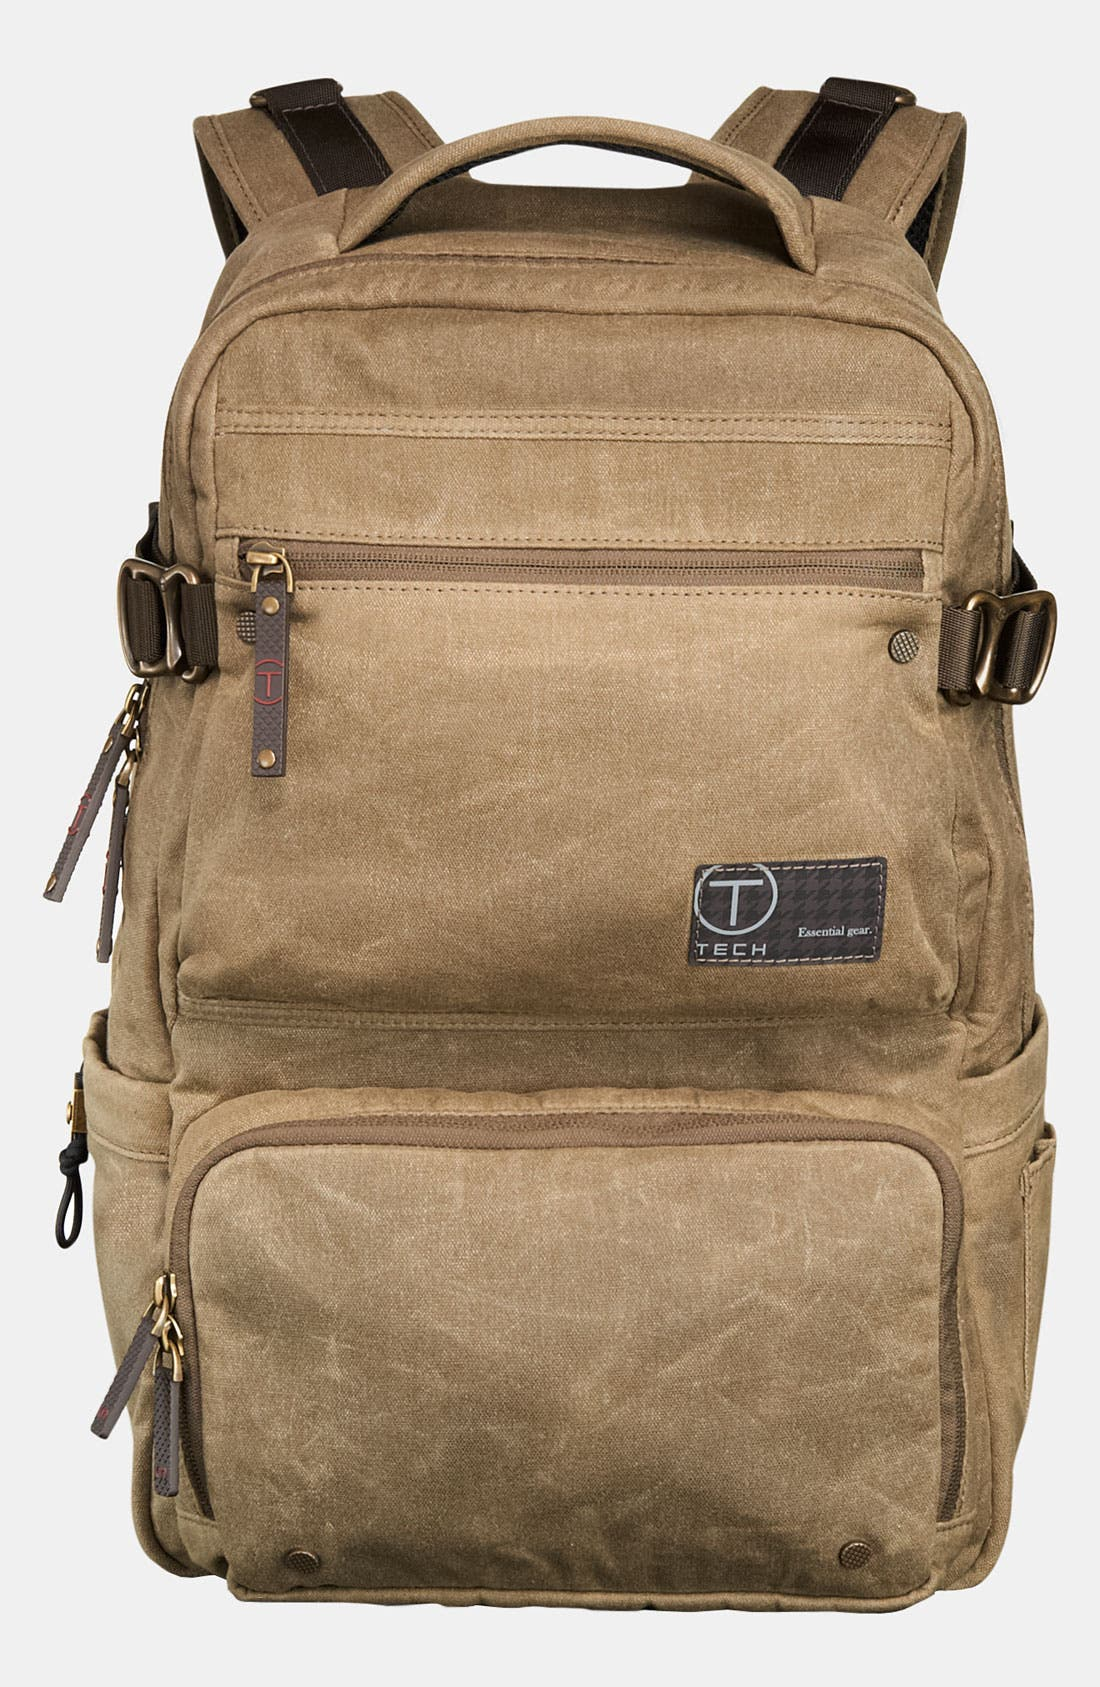 Alternate Image 1 Selected - Tumi 'T-Tech Icon - Melville' Zip Top BriefPack®